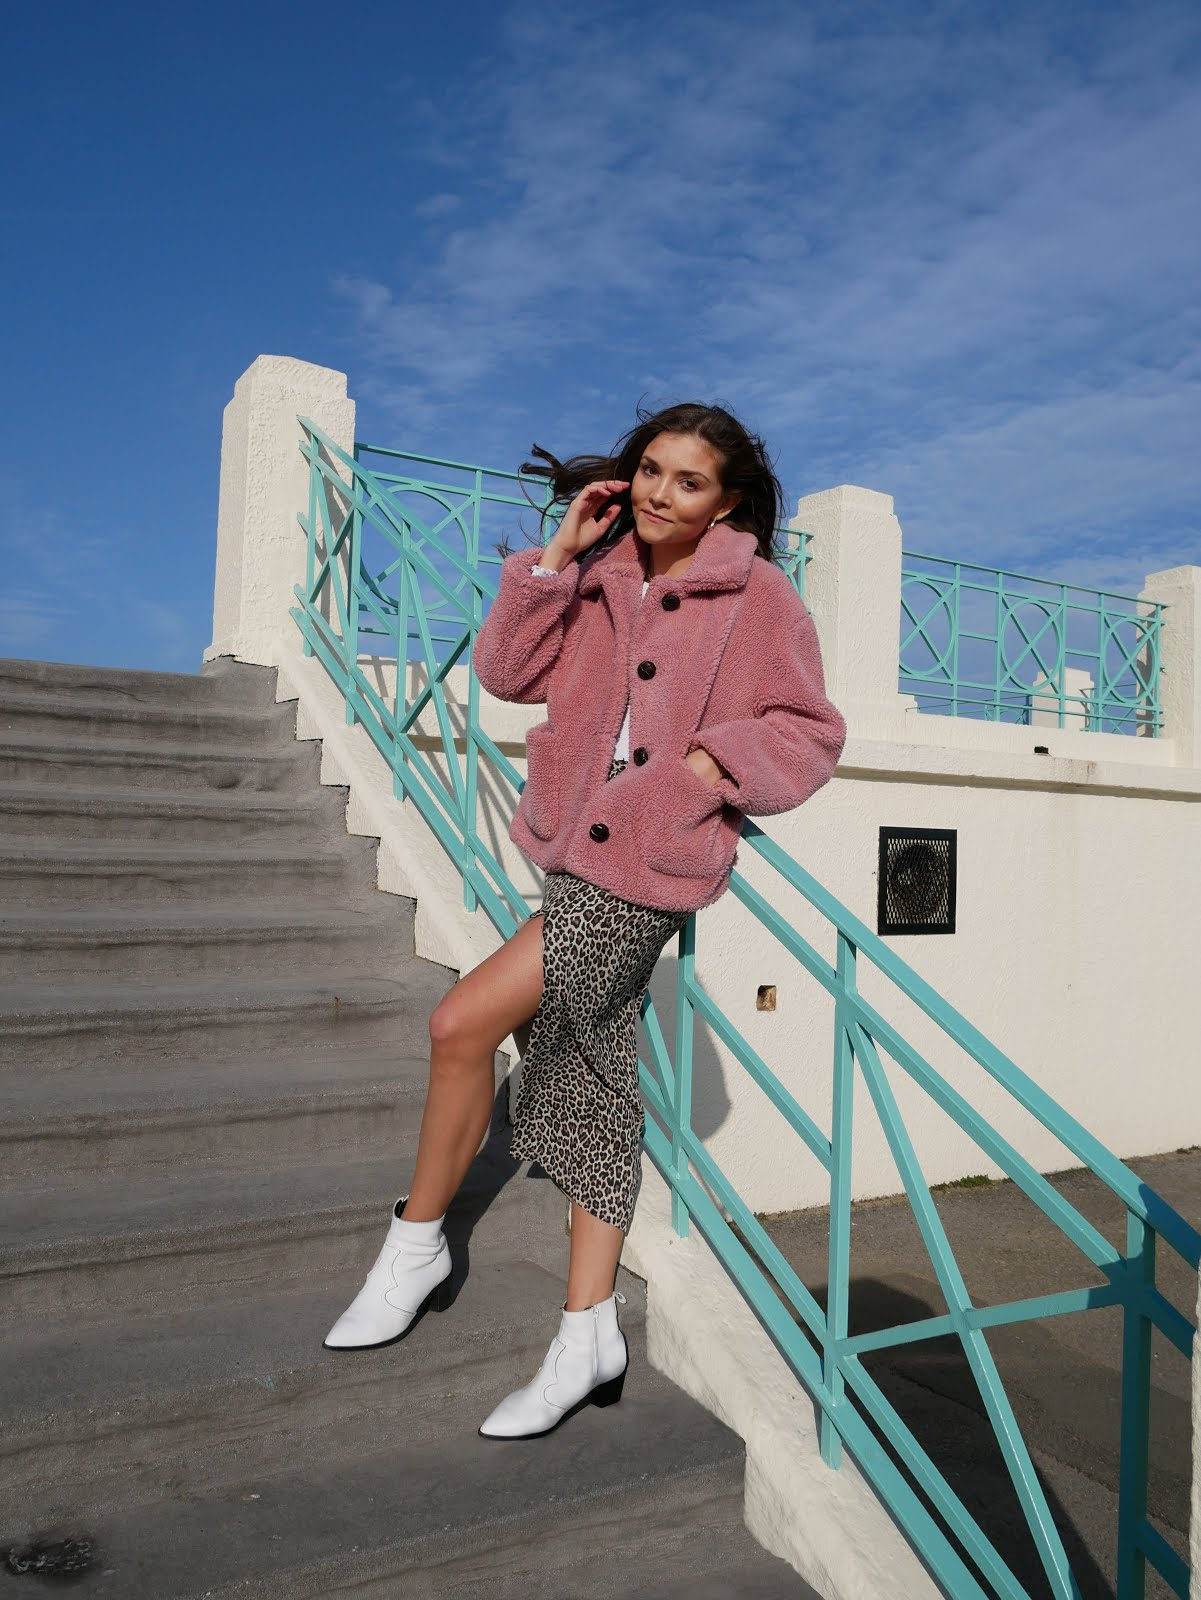 Style blogger in pink coat, leopard print skirt, white boots outside retro building